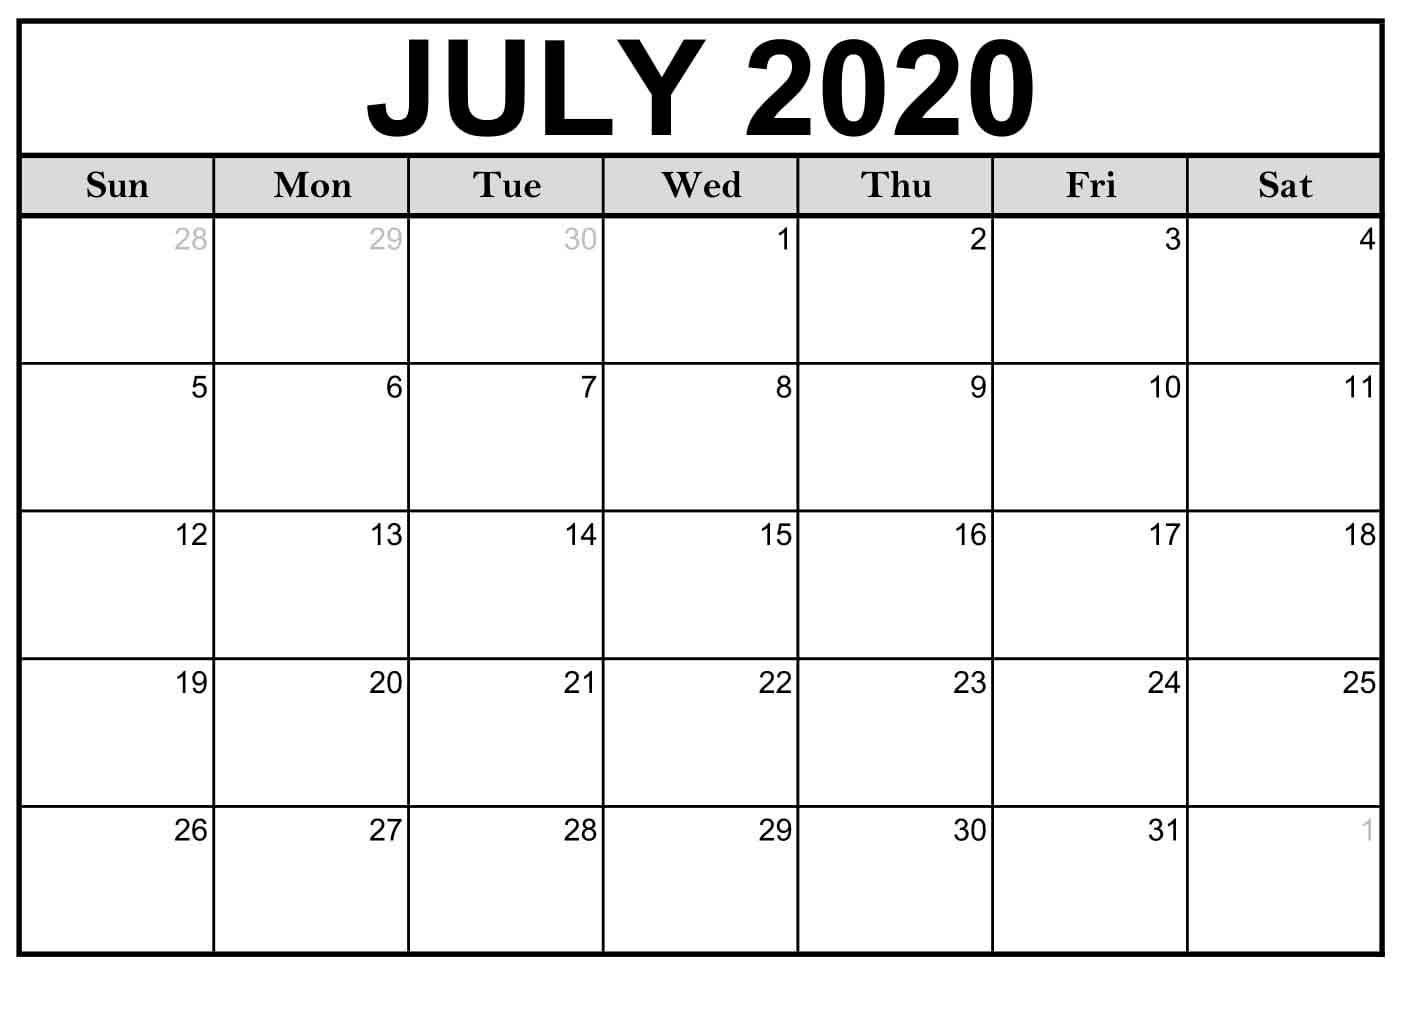 Calendar Month July 2020 - Free Printable Monthly Calendars